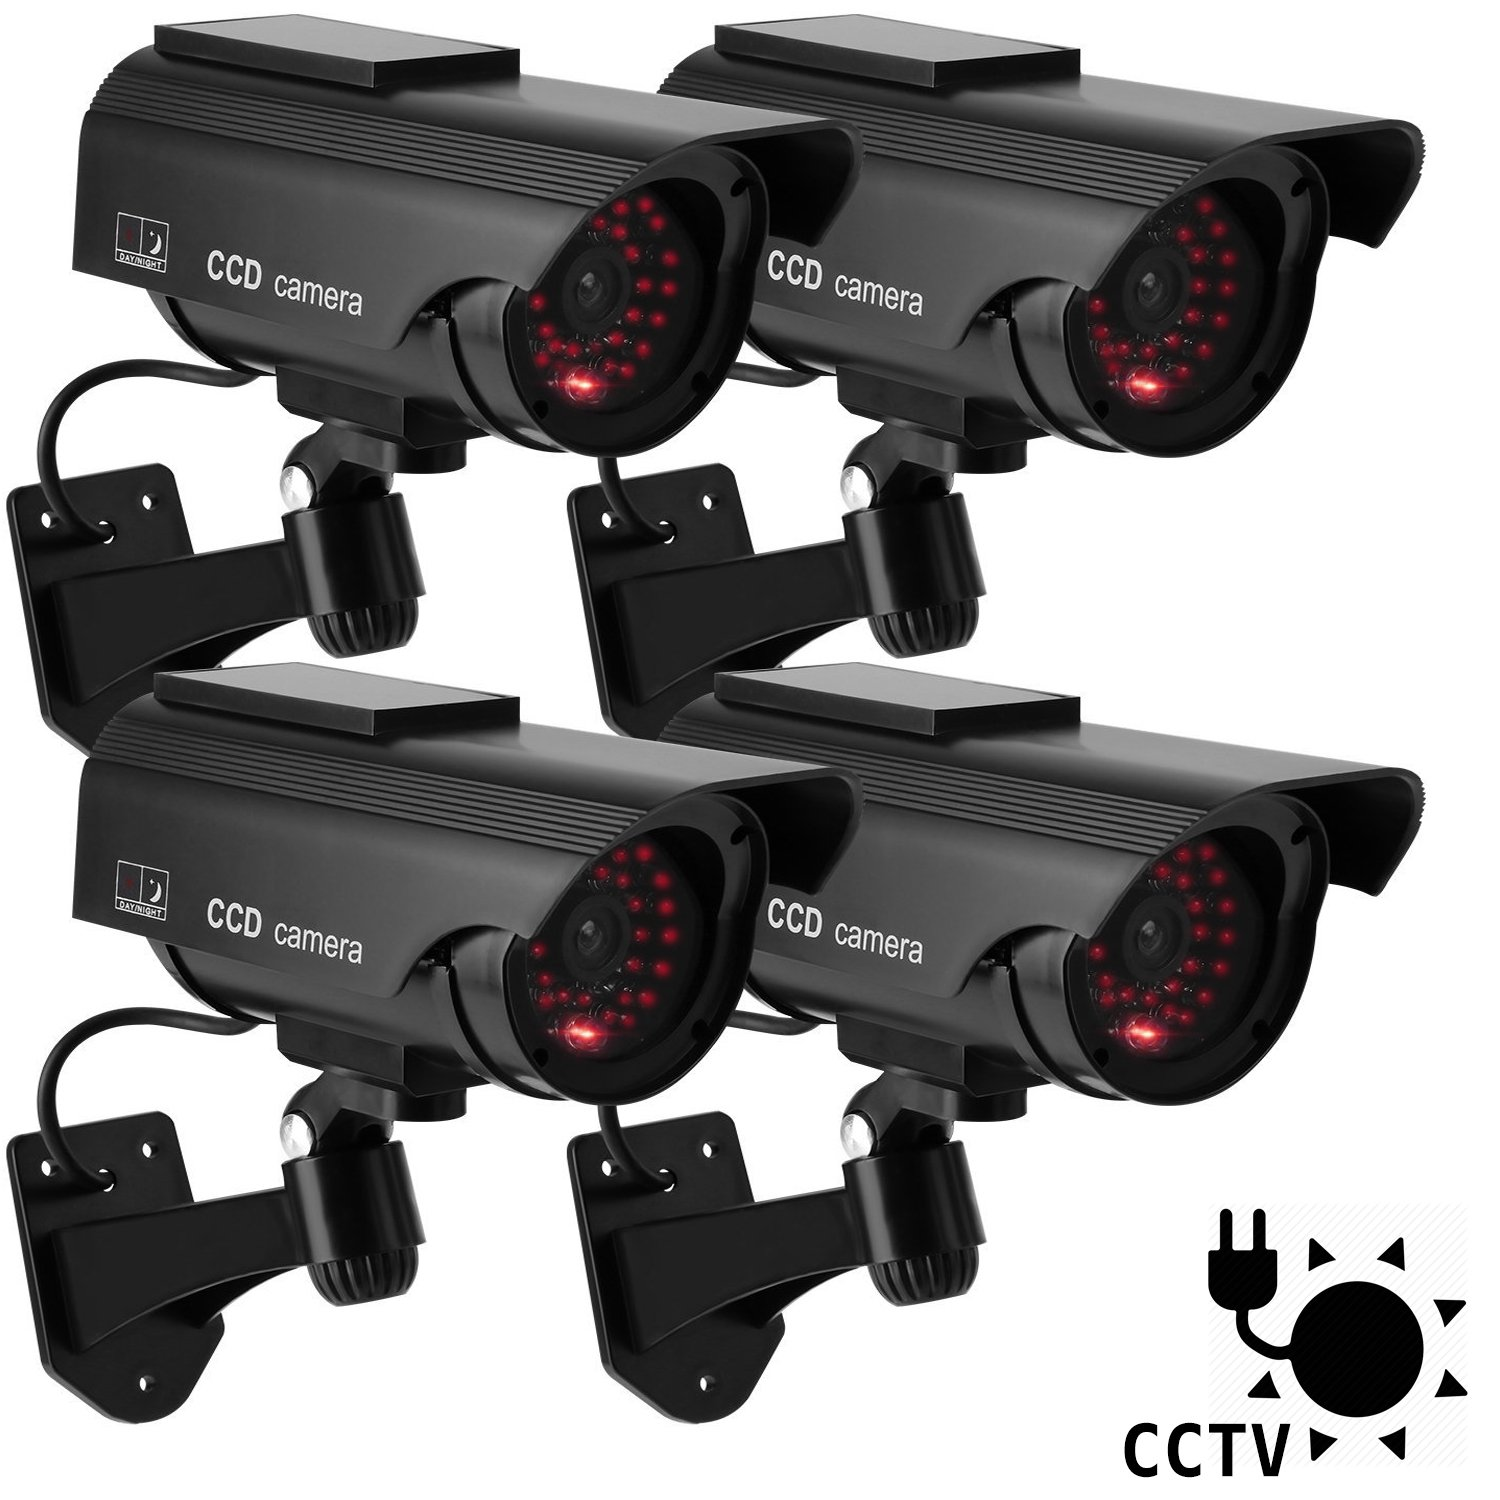 DIFEN Bullet Dummy Fake Security CCTV Solar Powered Camera Simulation Monitor with LED Blinking Light,Outdoor/Indoor Use for Homes & Business (4 Packs) by DIFEN